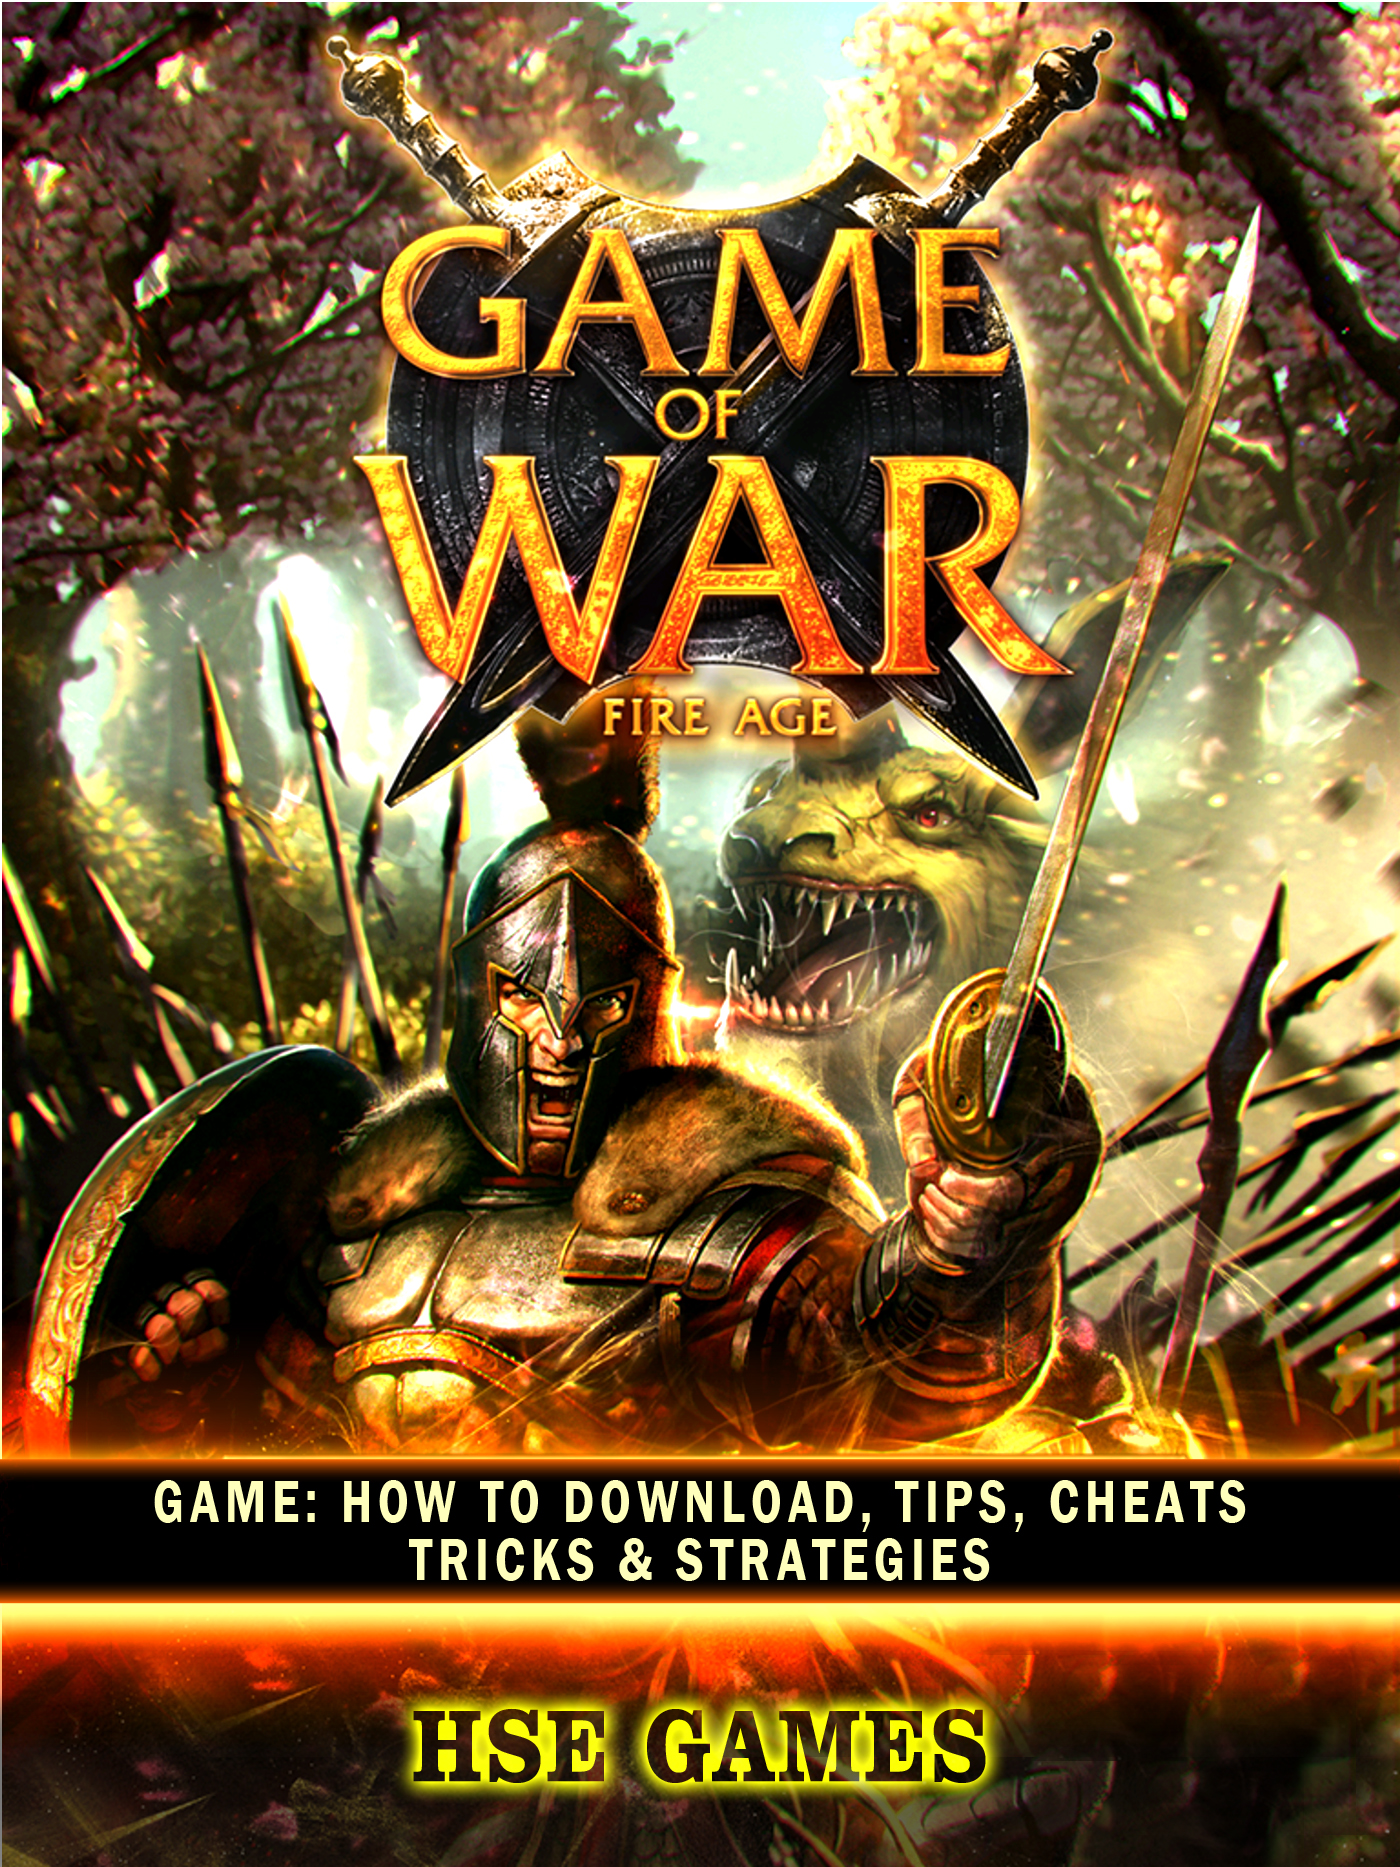 Game of War Fire Age Game: How to Download, Tips, Cheats Tricks & Strategies By Hse Games